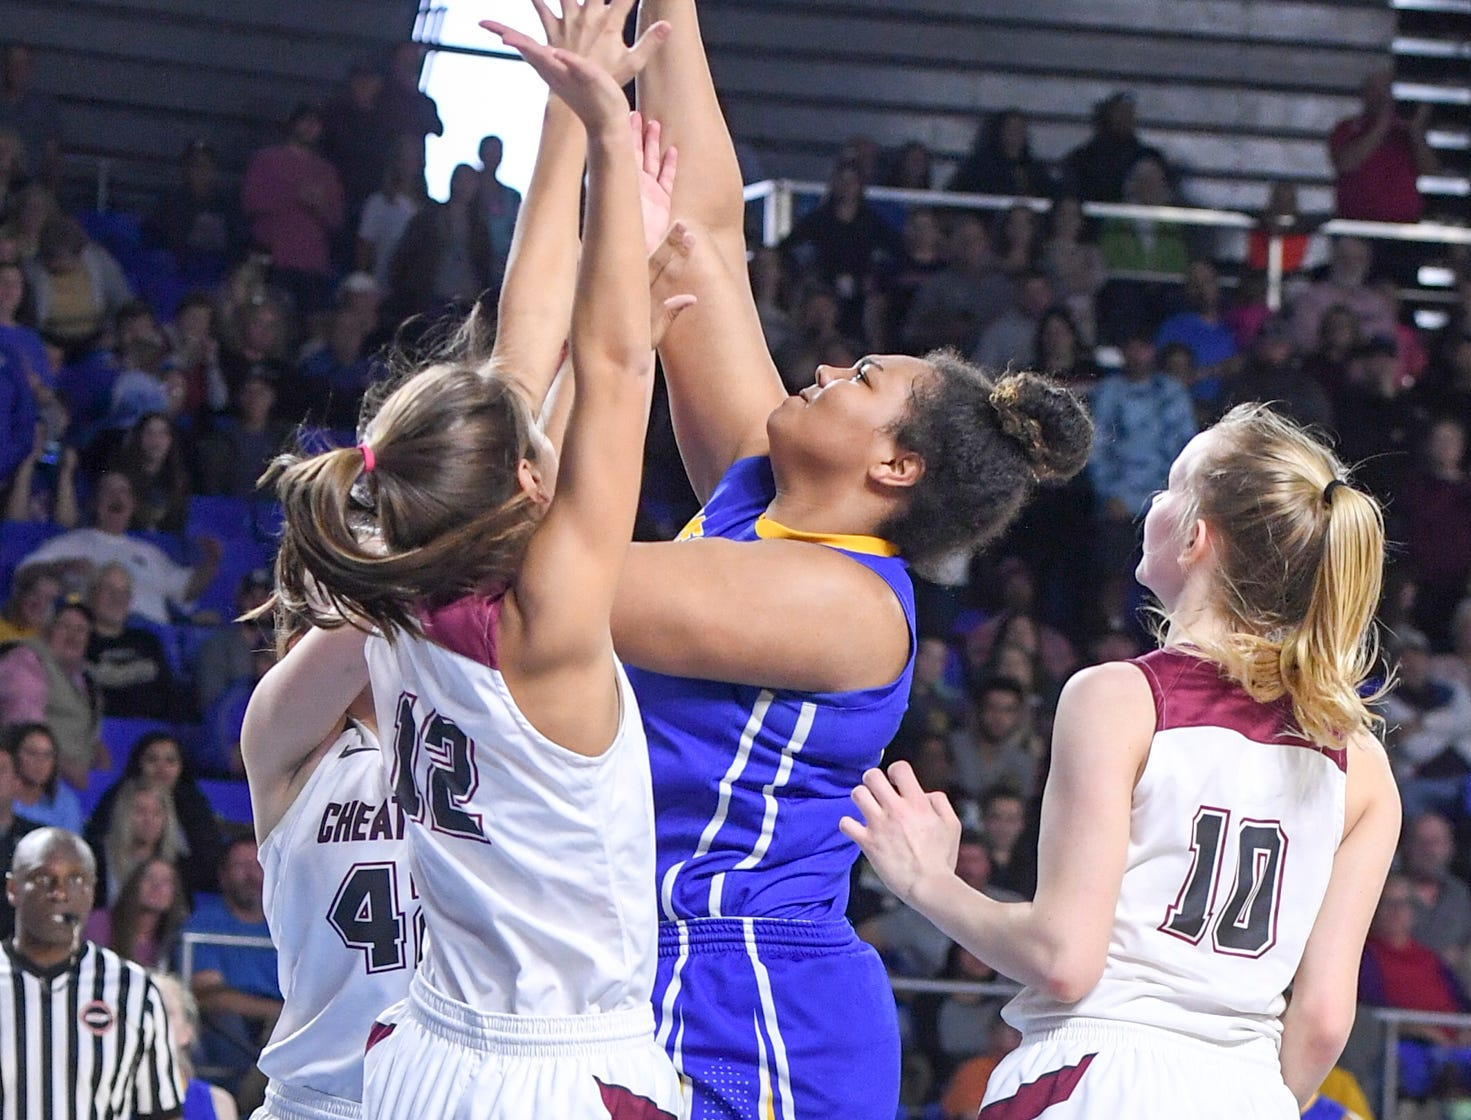 Westview's Raegan Johnson (50) puts up a shot over two Cheatam County defenders during their Class AA championship game, Saturday, March 9, 2019, in Murfreesboro. Westview fell to Cheatham County, 43-40.